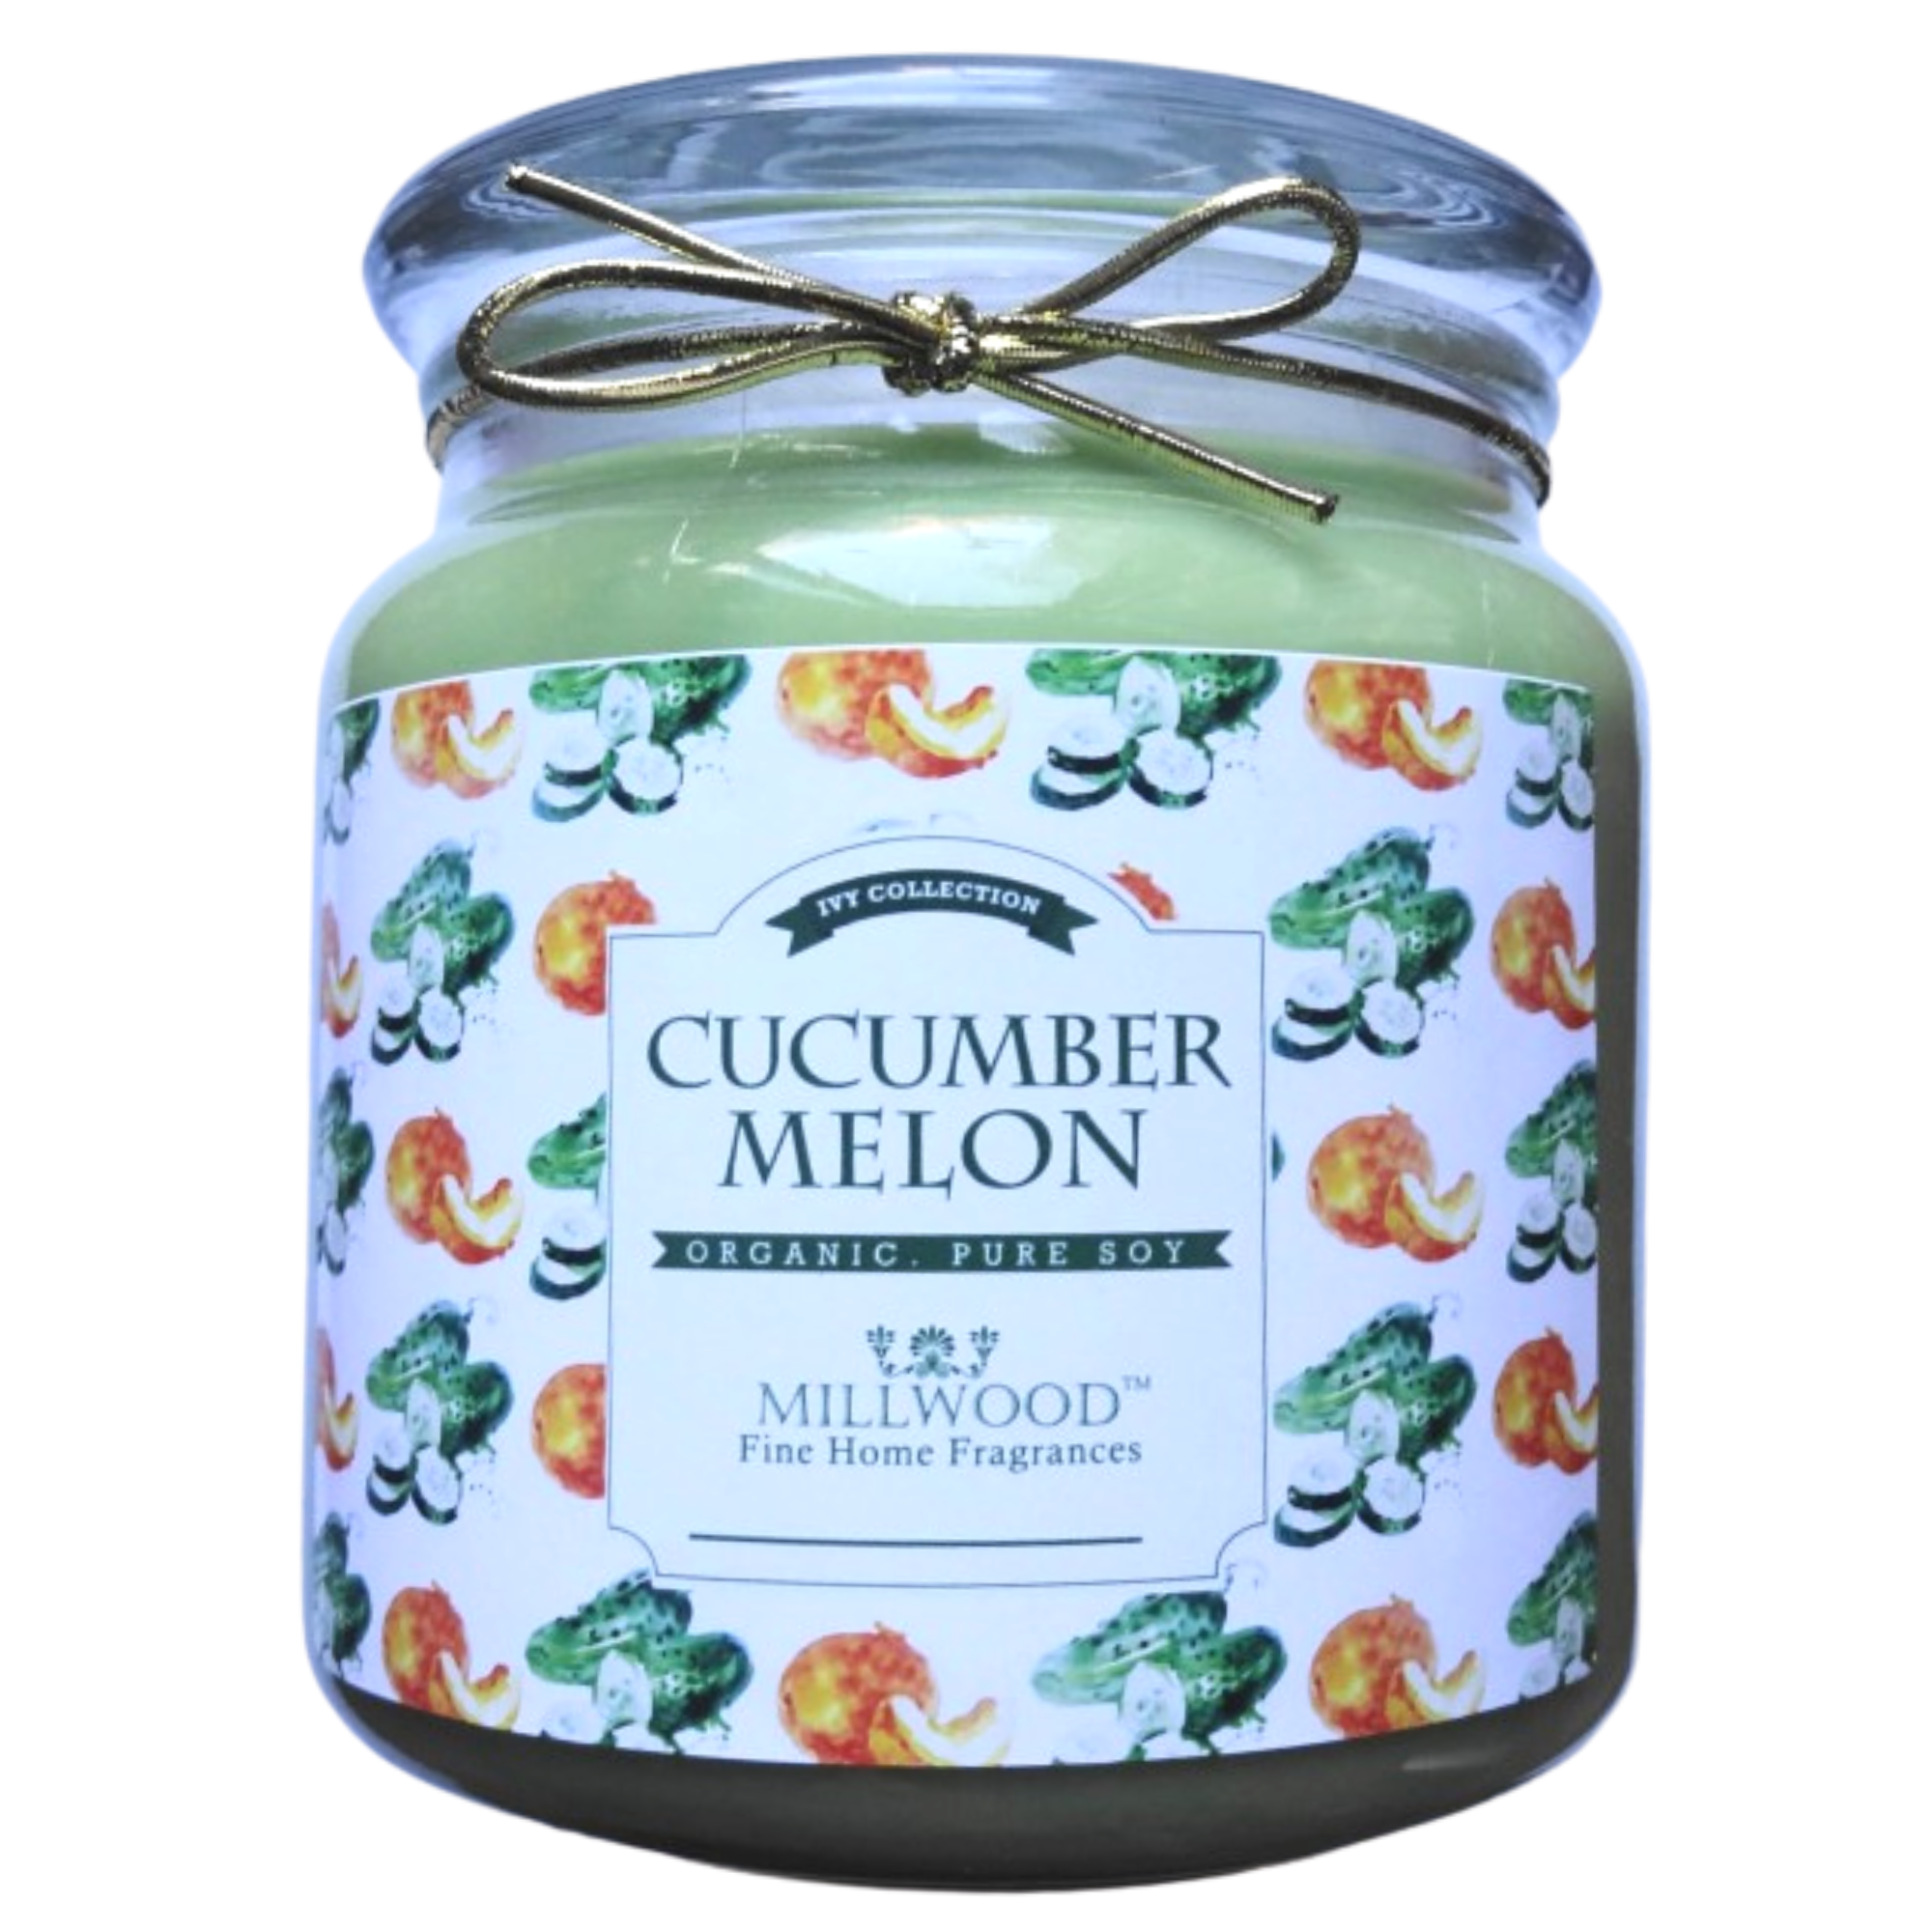 Cucumber Melon Soy Candle 16-oz 2021 Candle Scents and Air Freshener by Millwood Candles